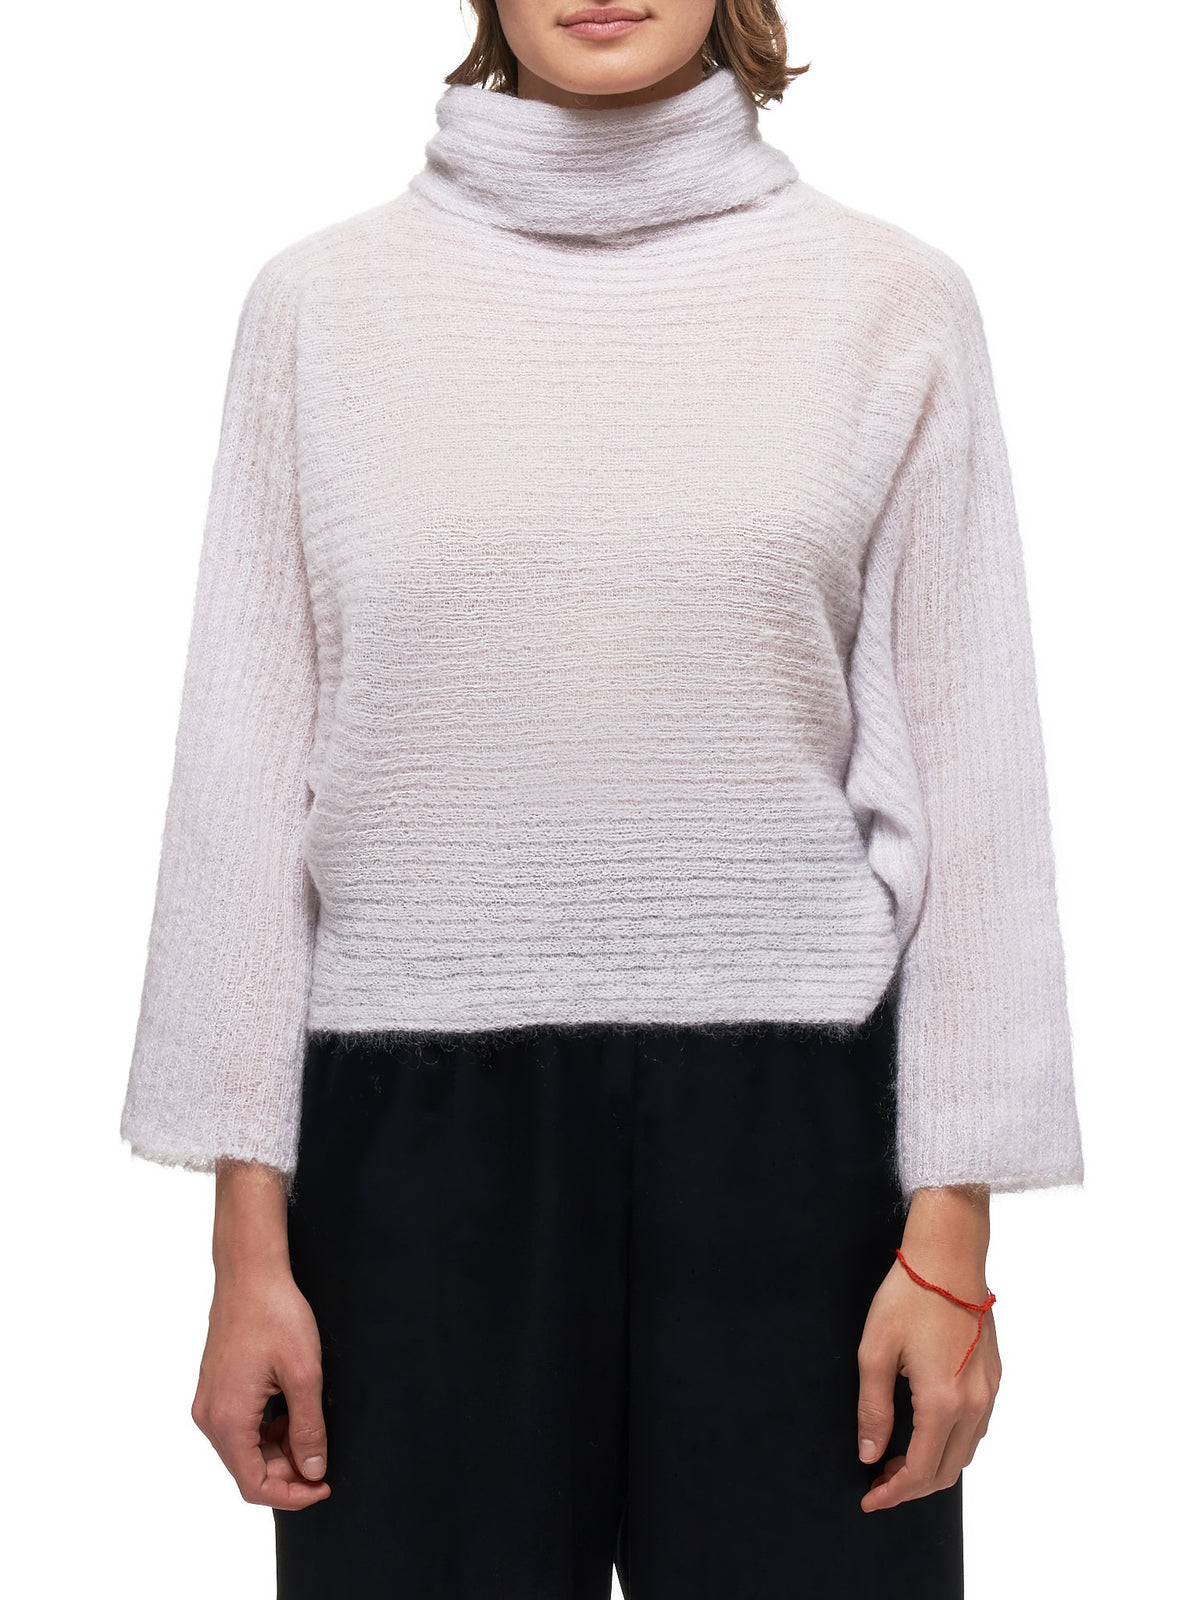 Knitted Sweater (IL98KN741-LIGHT-GRAY)